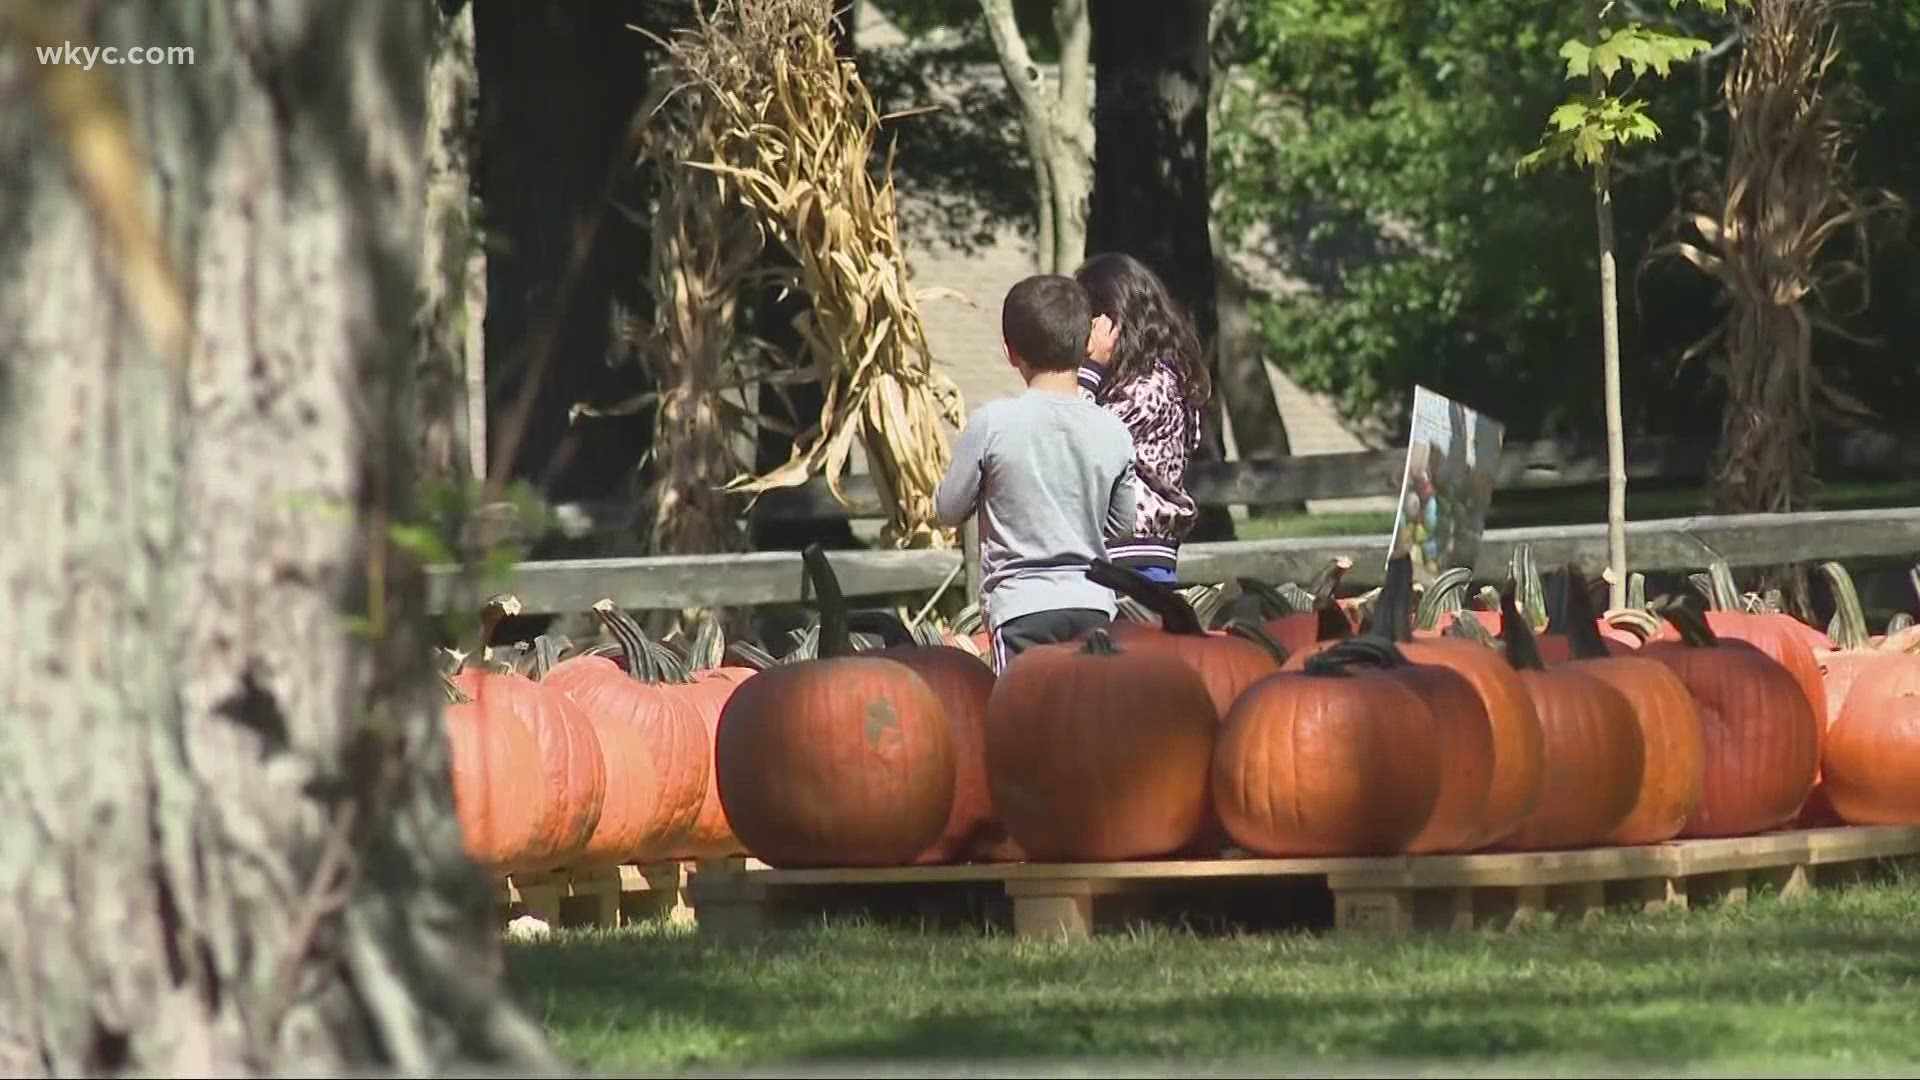 Halloween Events For Kids In Cleveland 2020 Laura DeMarco's 2020 Cleveland Halloween Guide | wkyc.com